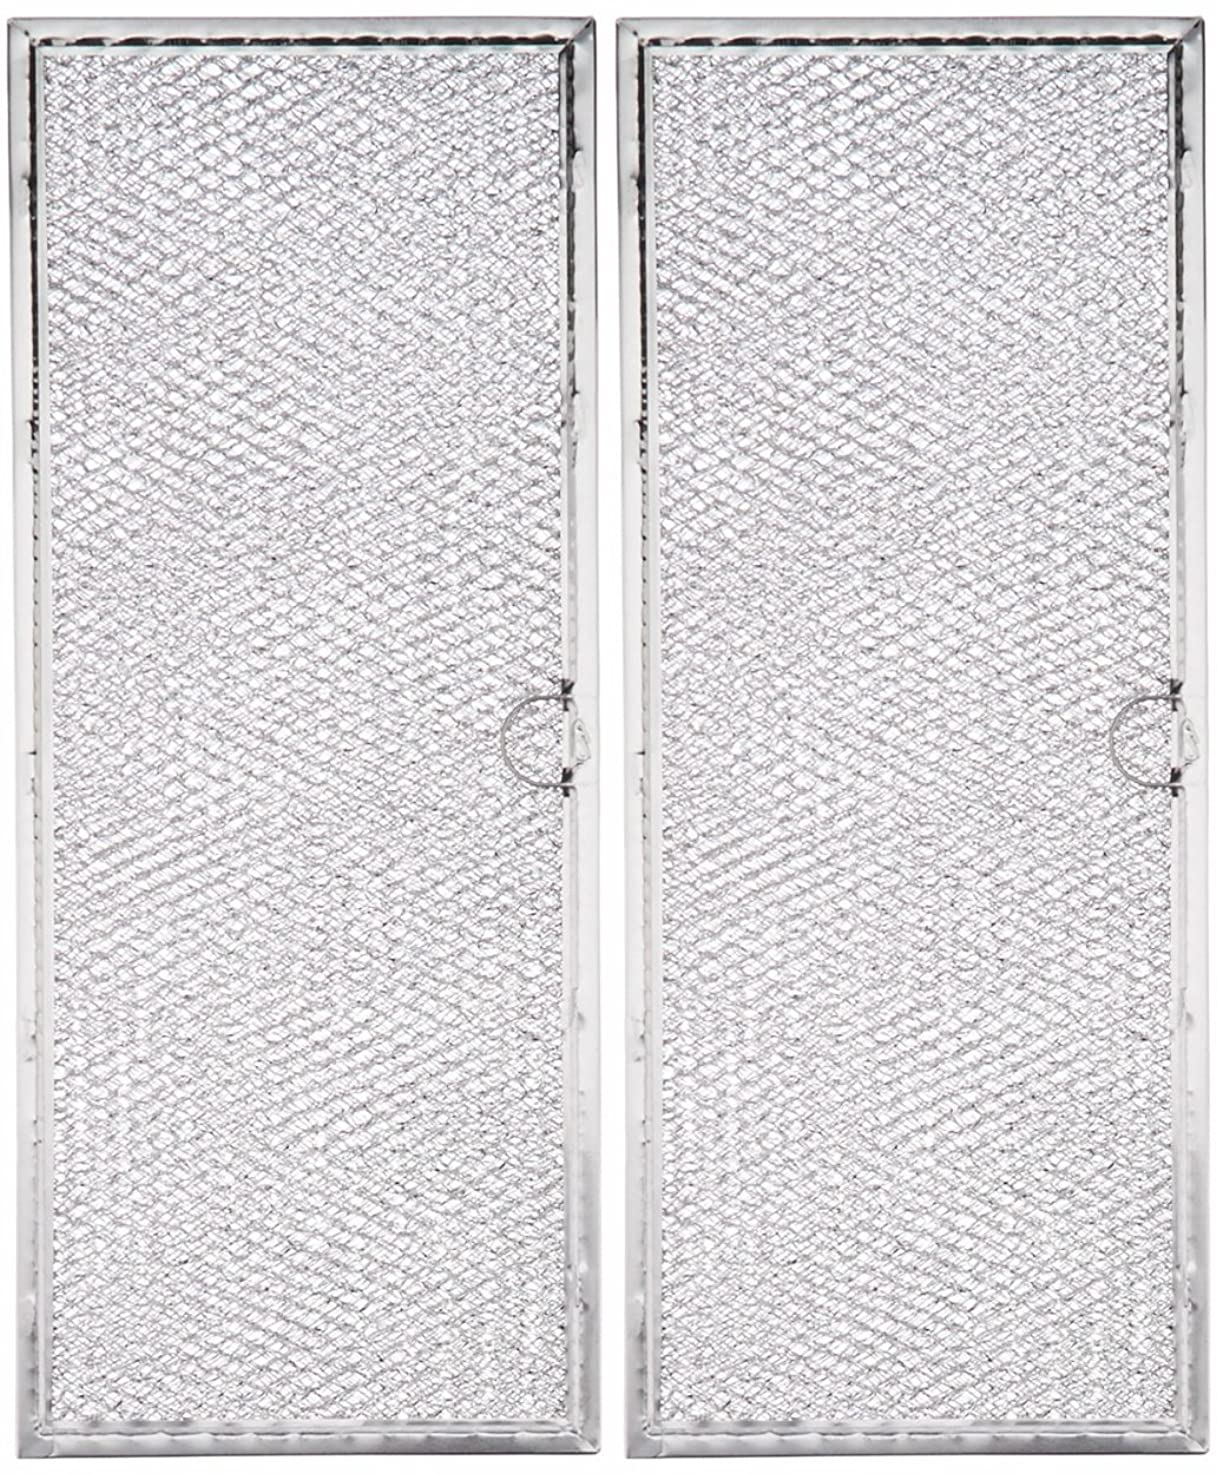 Whirlpool 71002111 Grease Filter Replacement Fits Many Whirpool Maytag and Jenn Air Models (2-Pack)